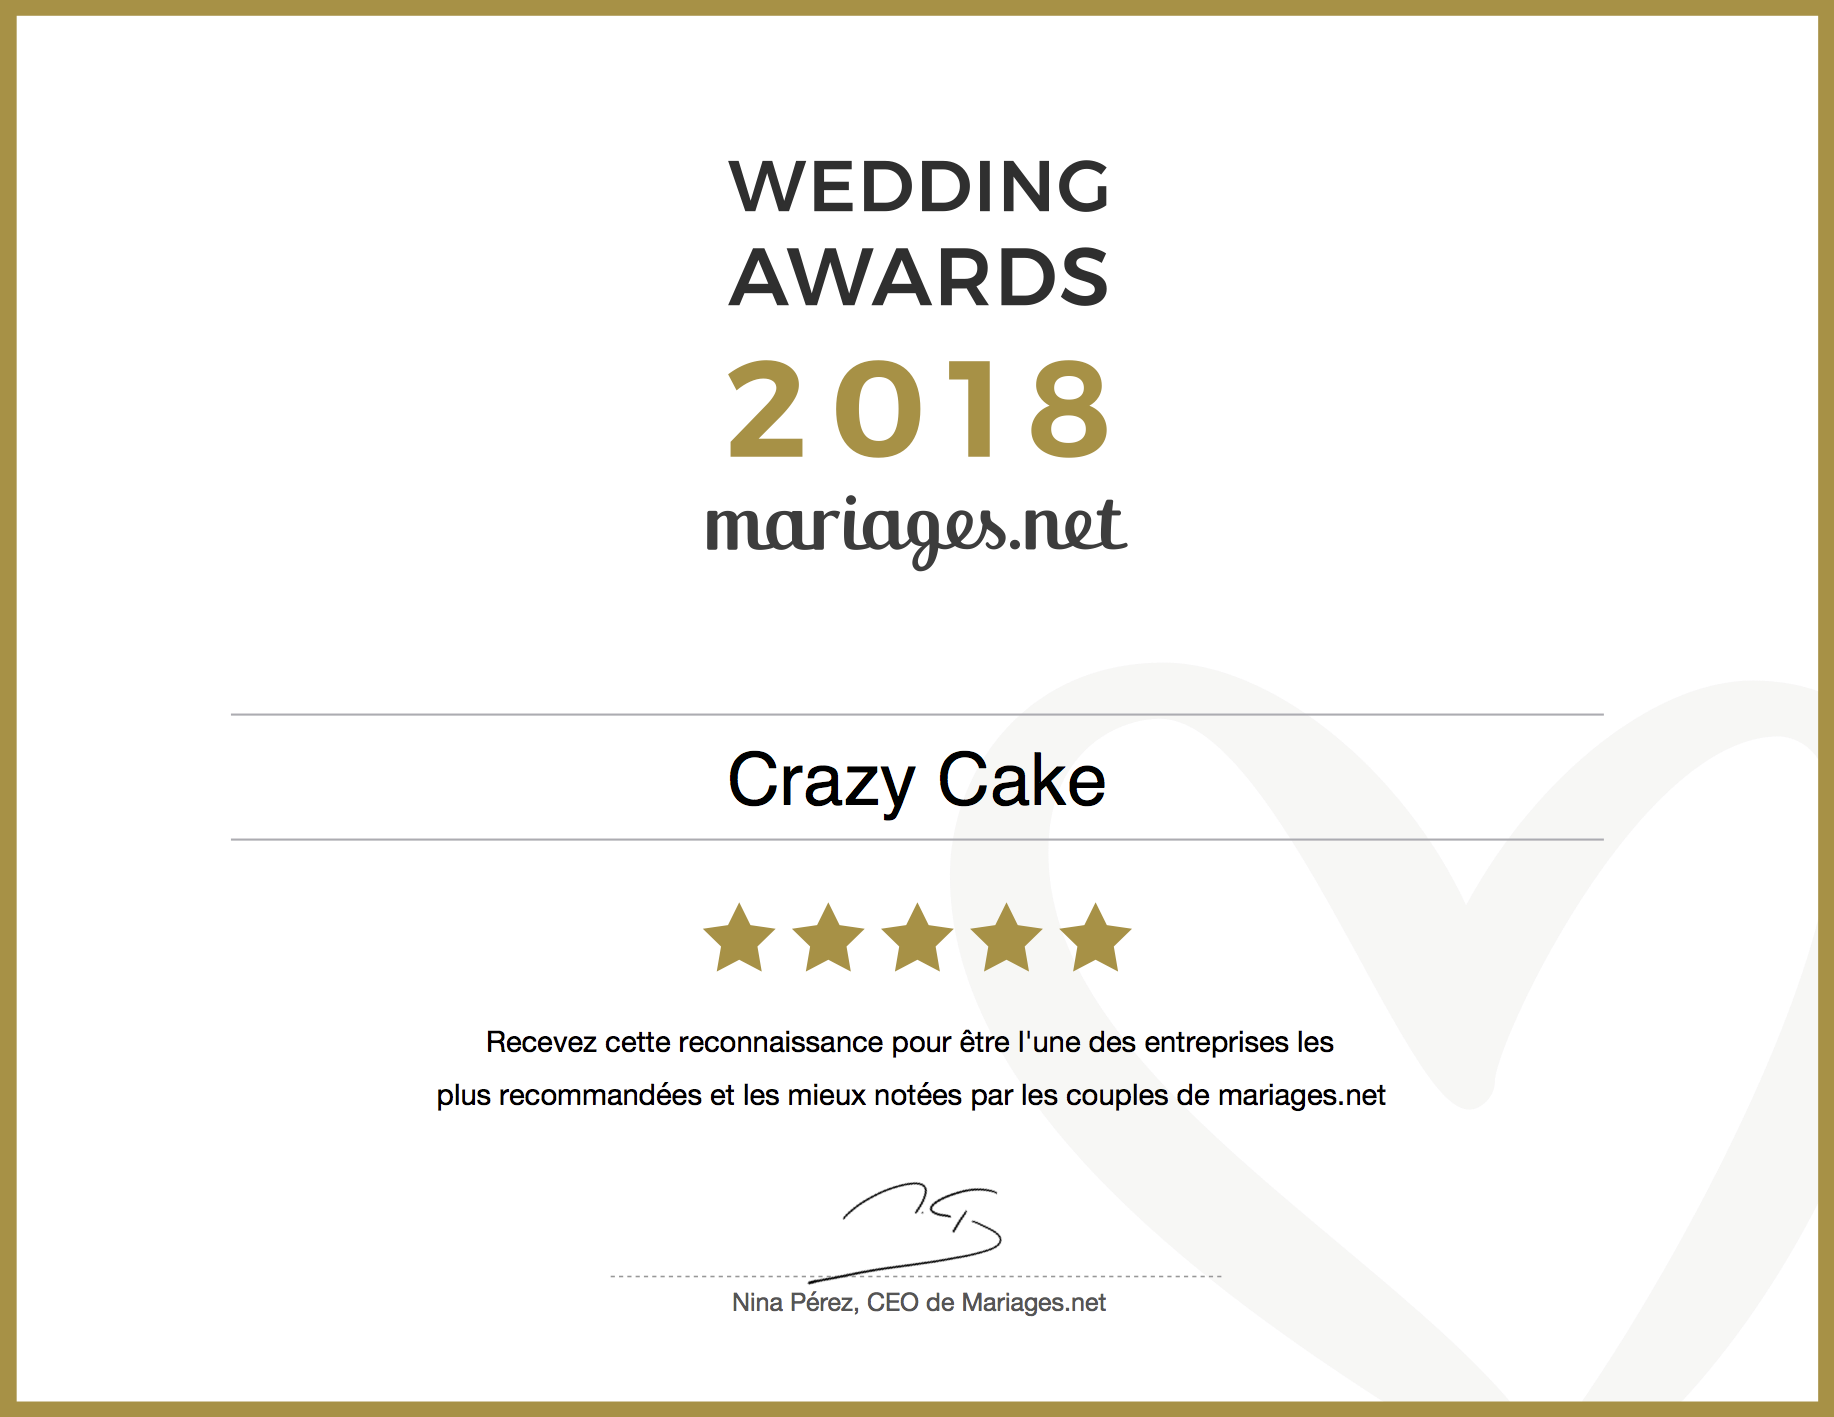 Wedding Awards 2018 - Bravo Crazy Cake